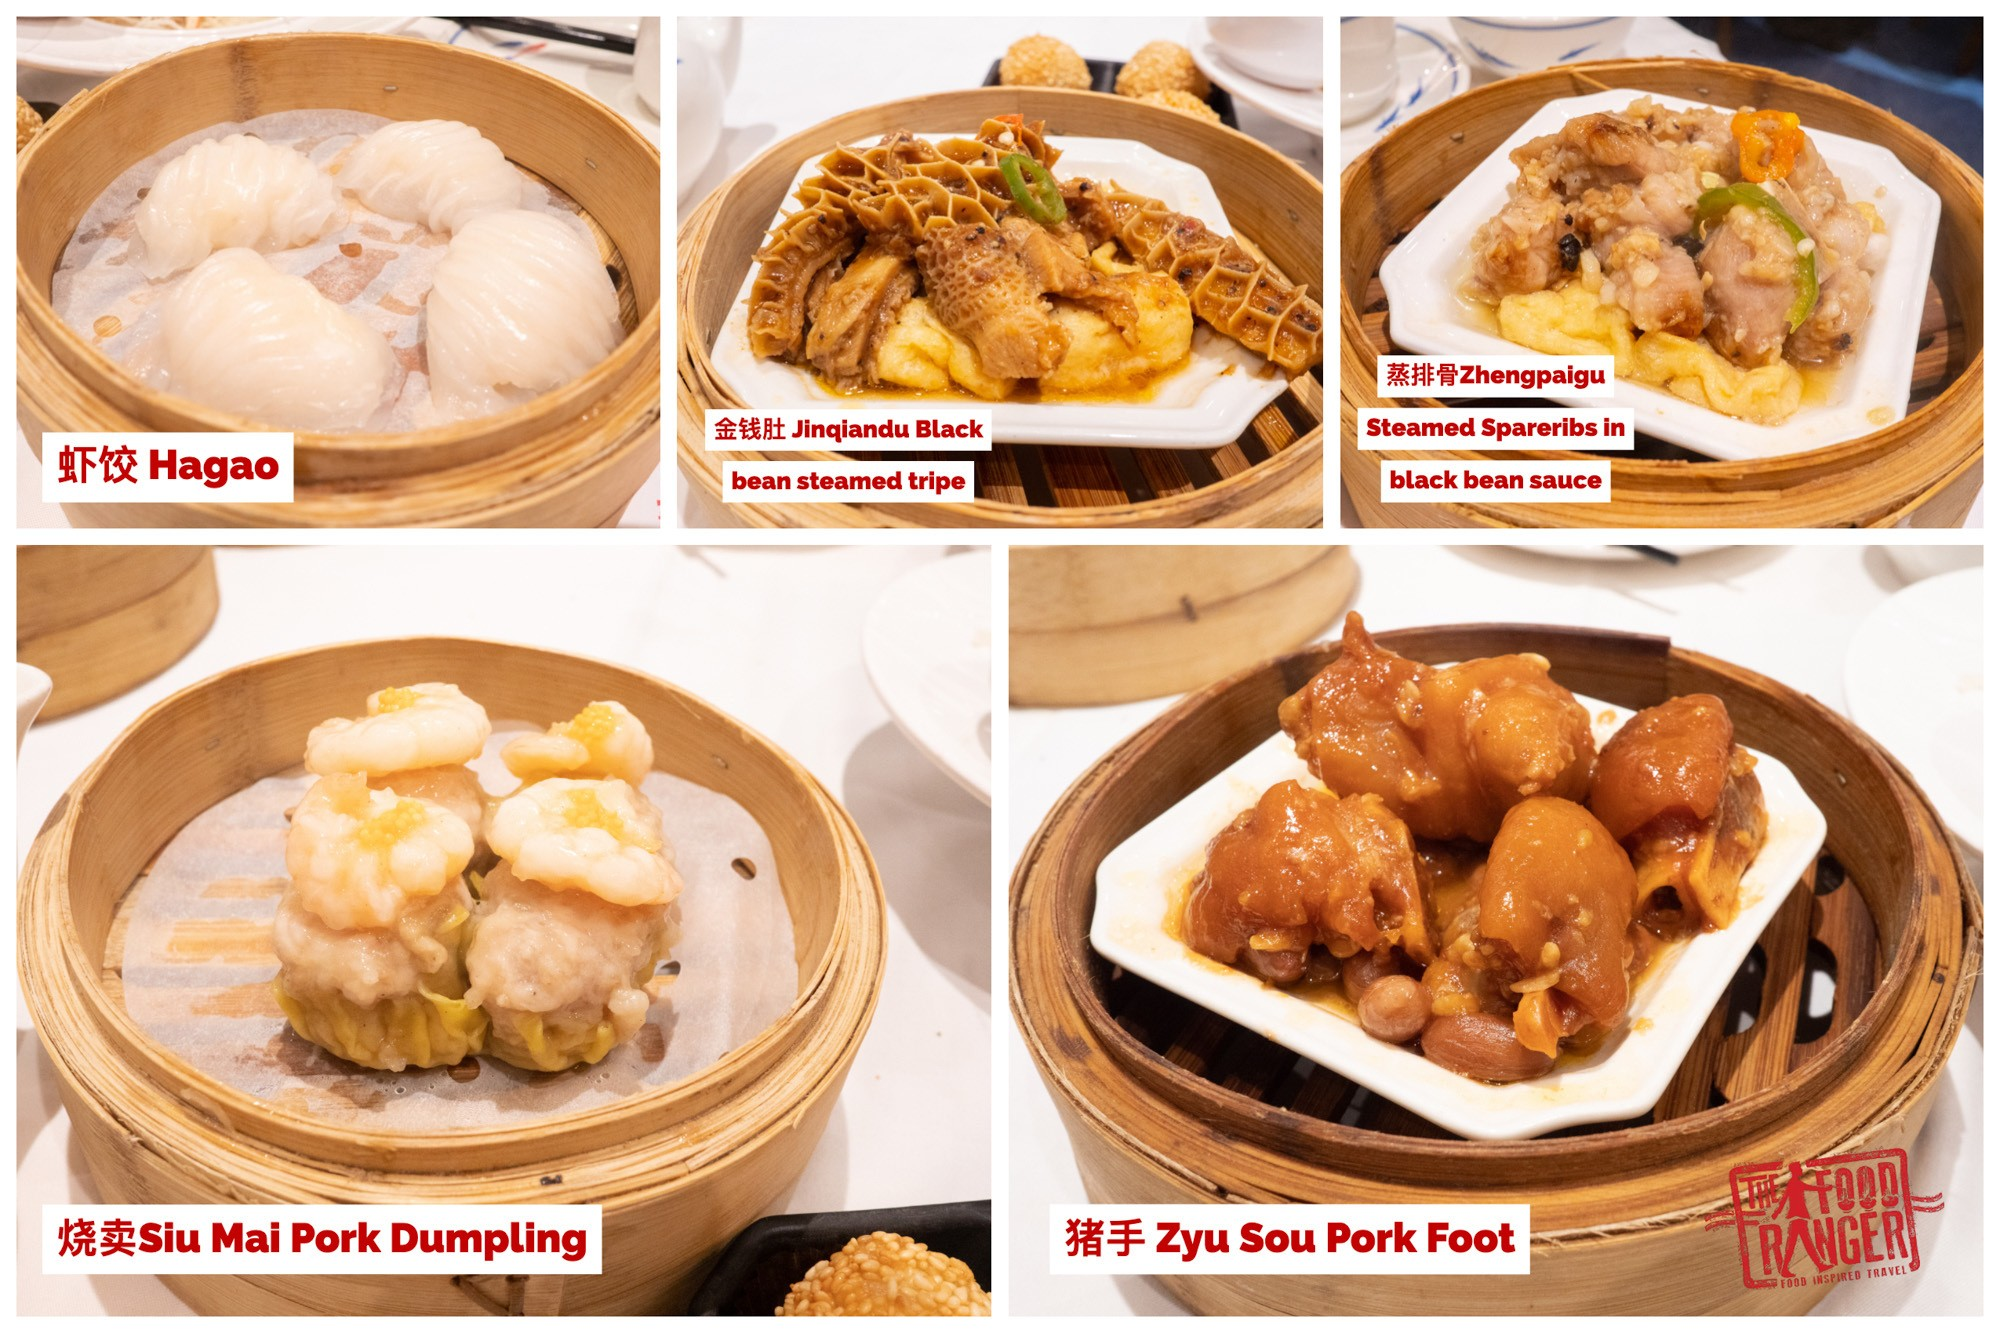 A list of the dishes you can order at dao heung dim sum